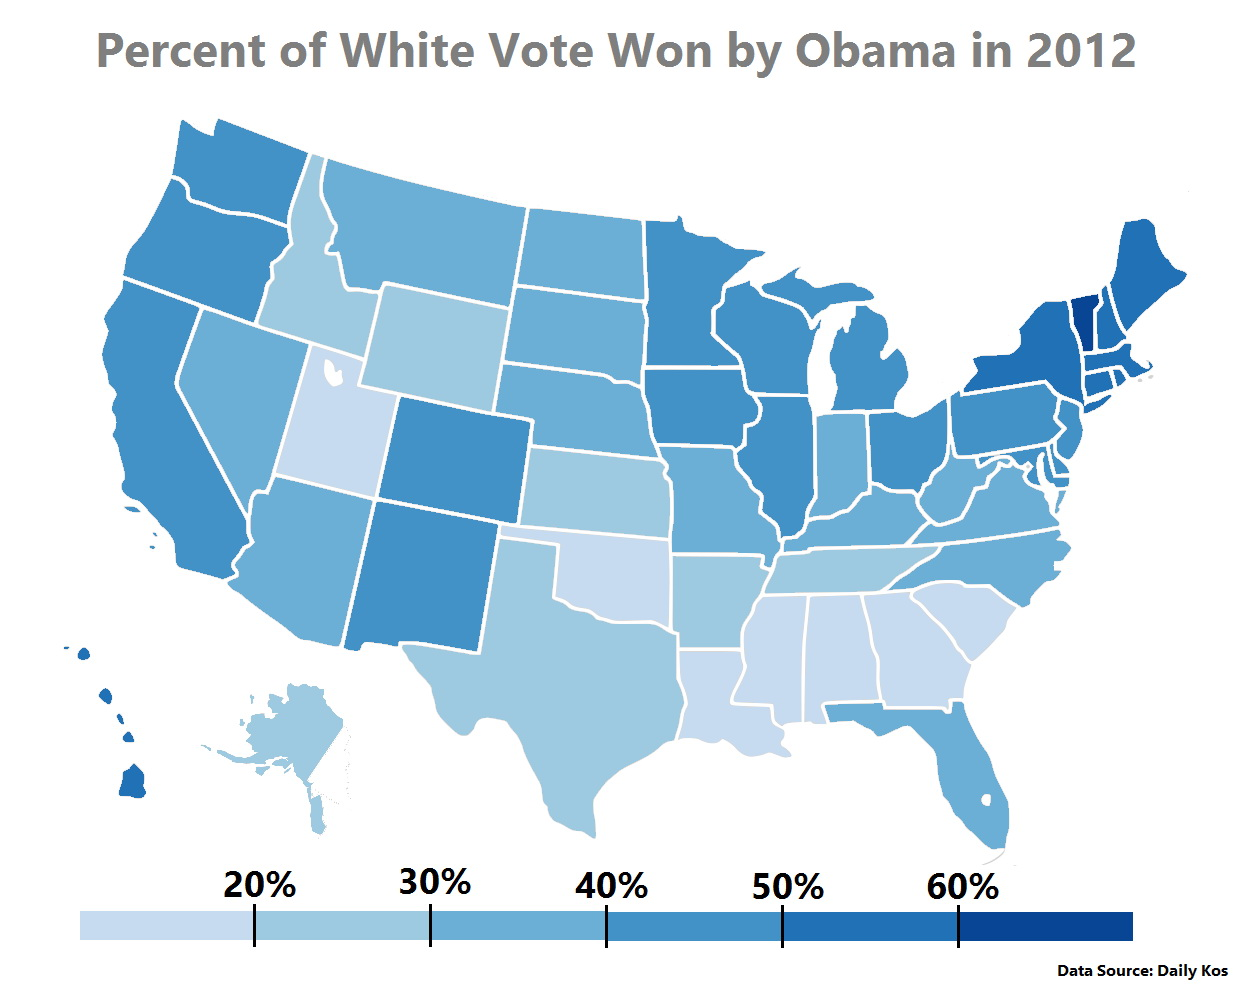 Percent of white vote won by Obama in 2012